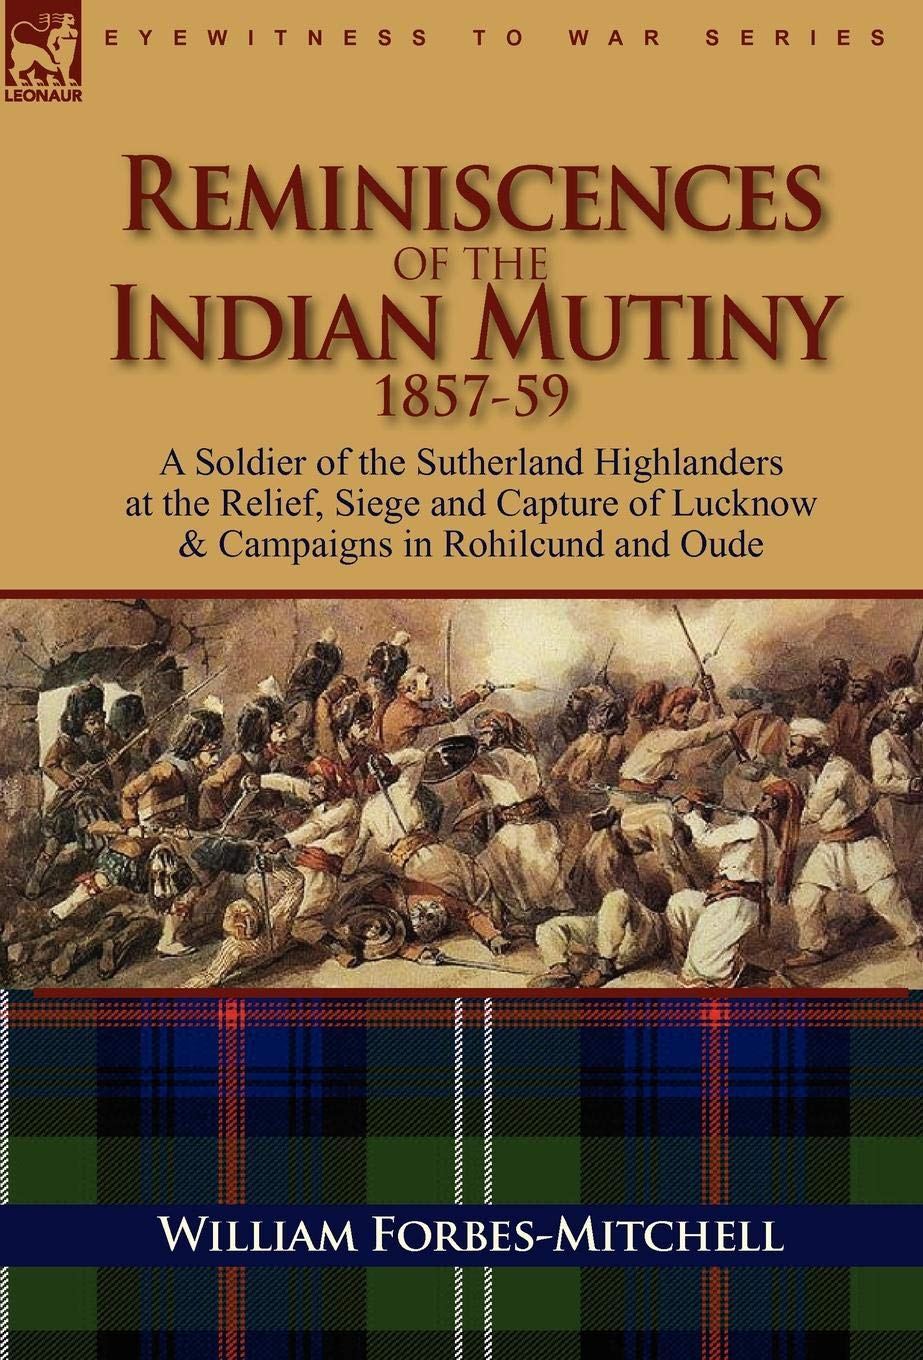 Reminiscences of the Indian Mutiny 1857-59: A Soldier of the Sutherland Highlanders at the Relief, Siege and Capture of Lucknow & Campaigns in Rohilcund and Oude pdf